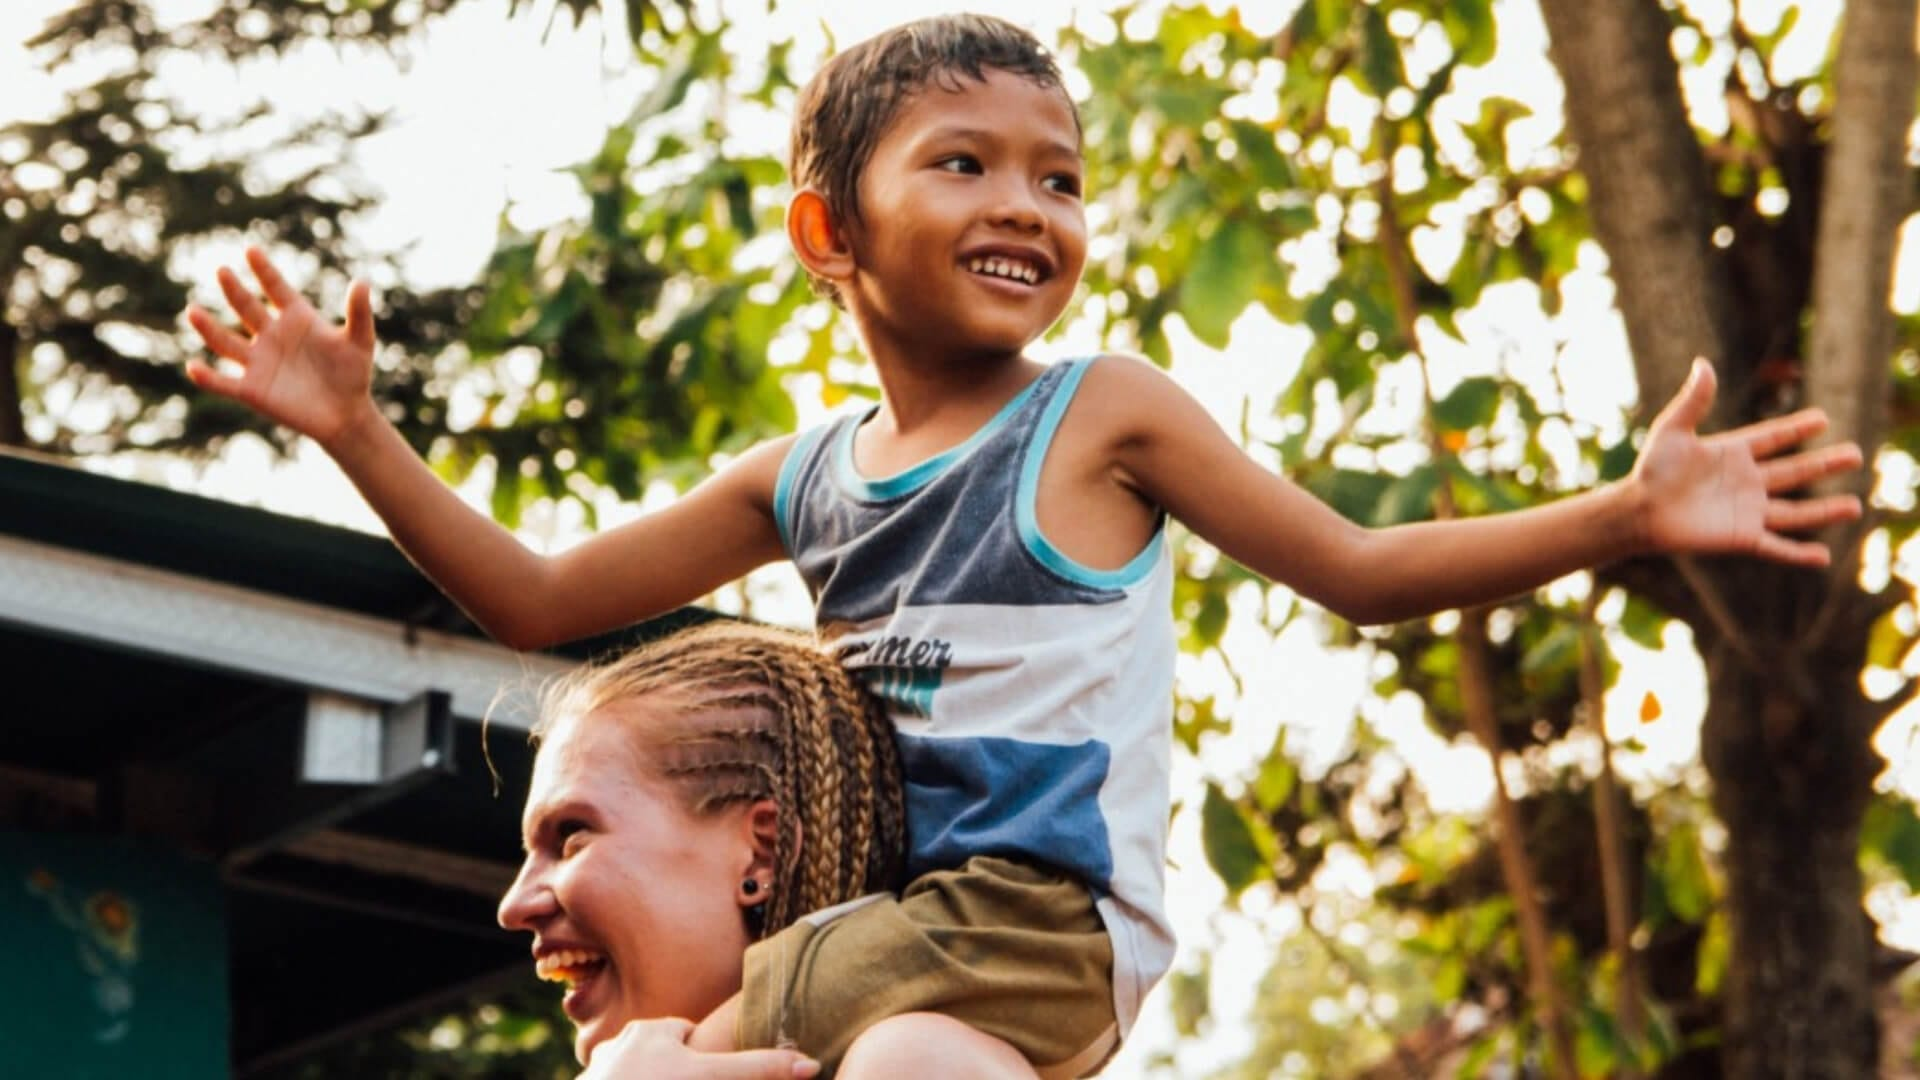 A child is sitting on someone's shoulders and smiling in Asia.